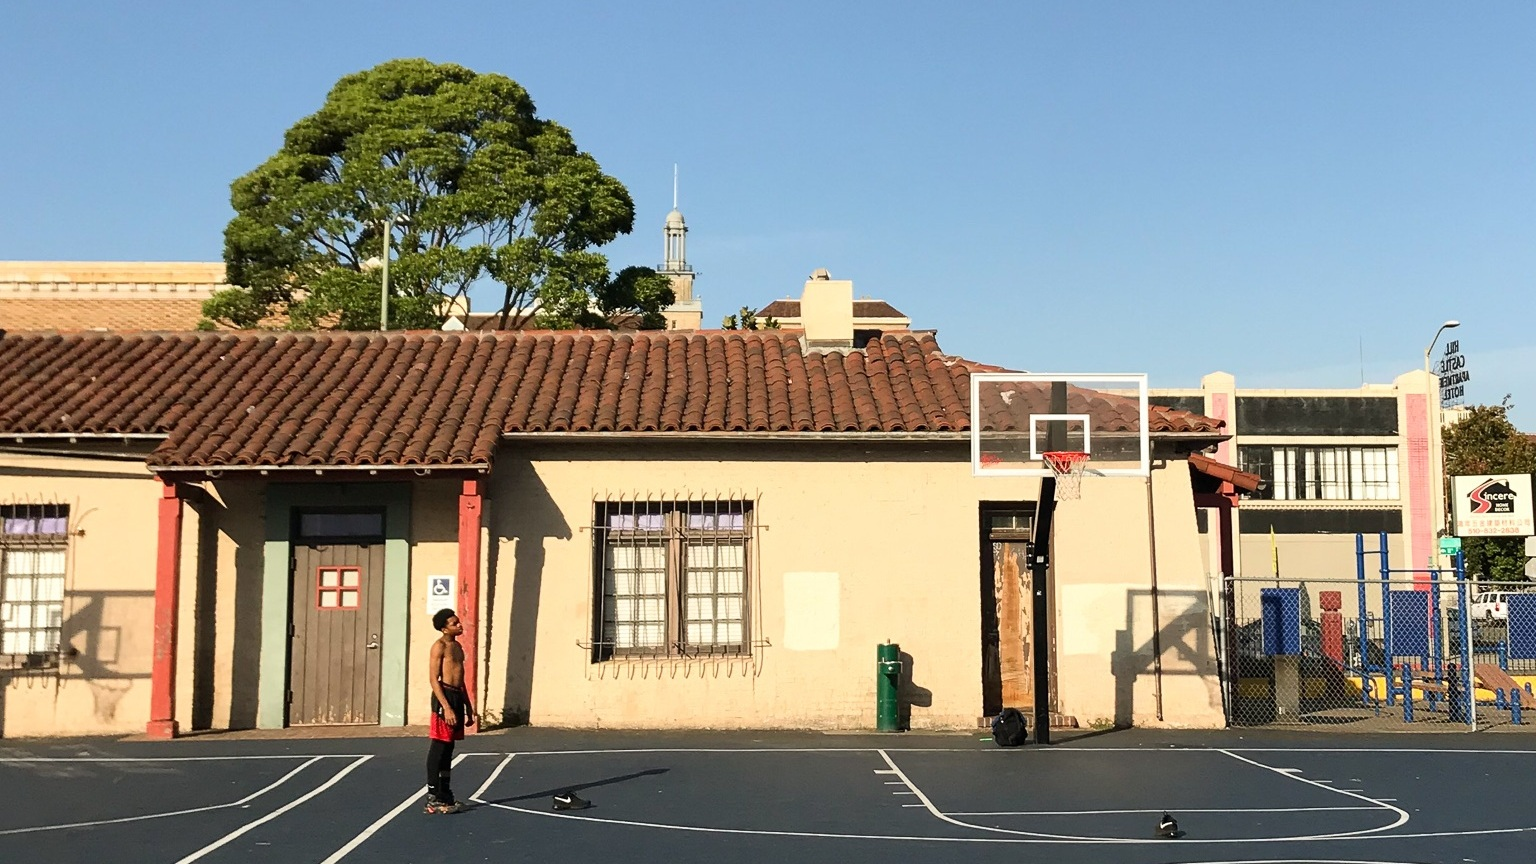 Lincoln+Park+Oakland+California+basketball+courts